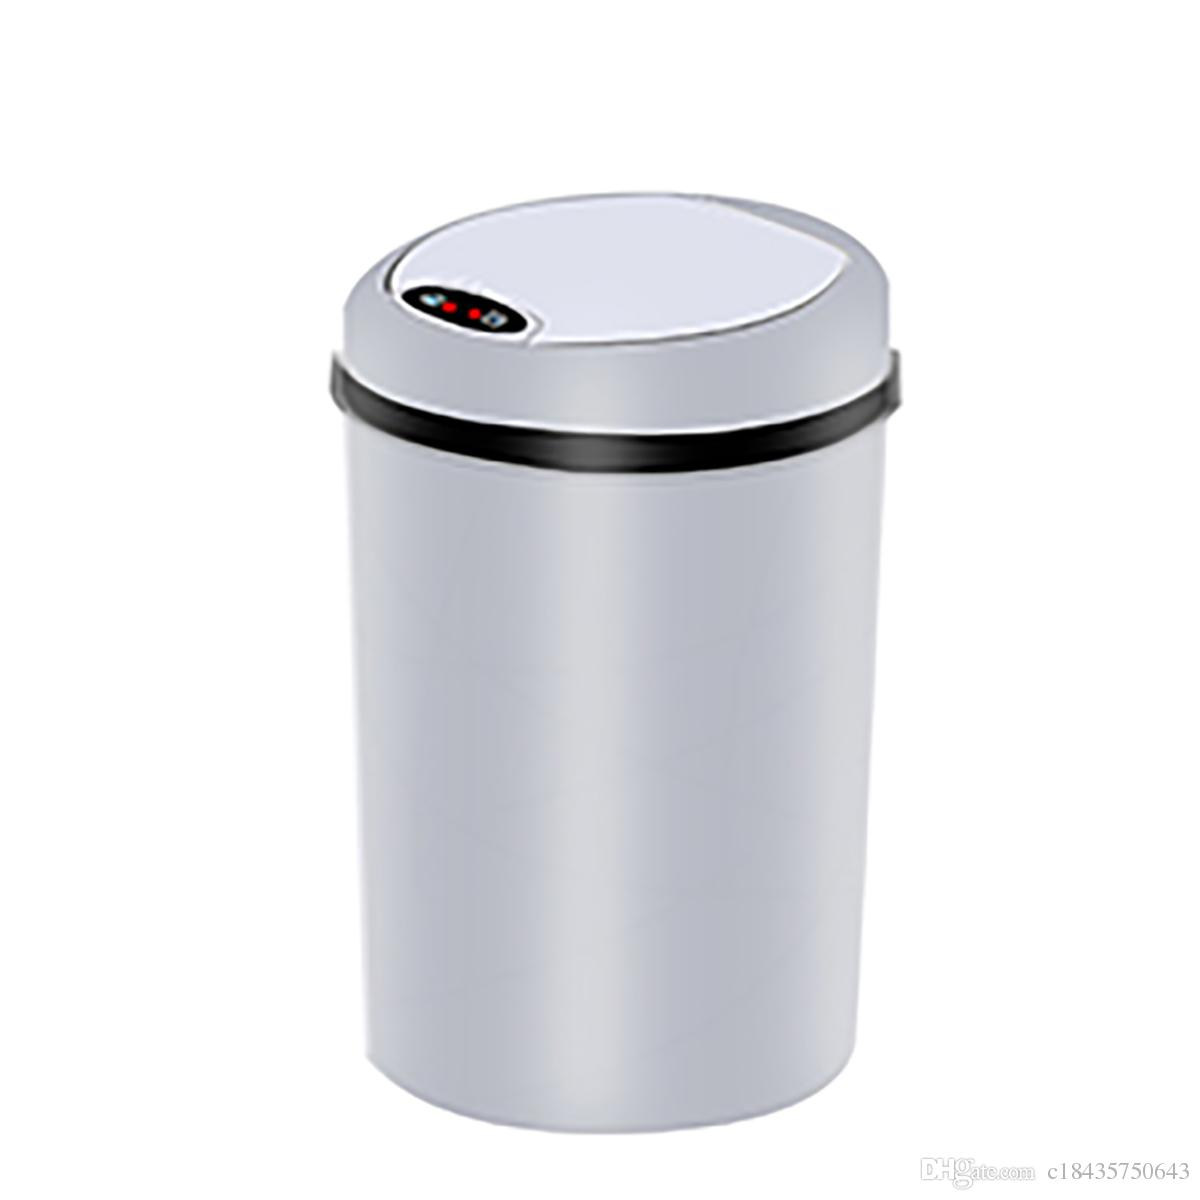 Small White Trash Can With Lid Small Automatic Trash Can Touchless Intelligent Induction Garbage Bin With Inner Bucket Contactless Circulator Quiet Lid Close Can